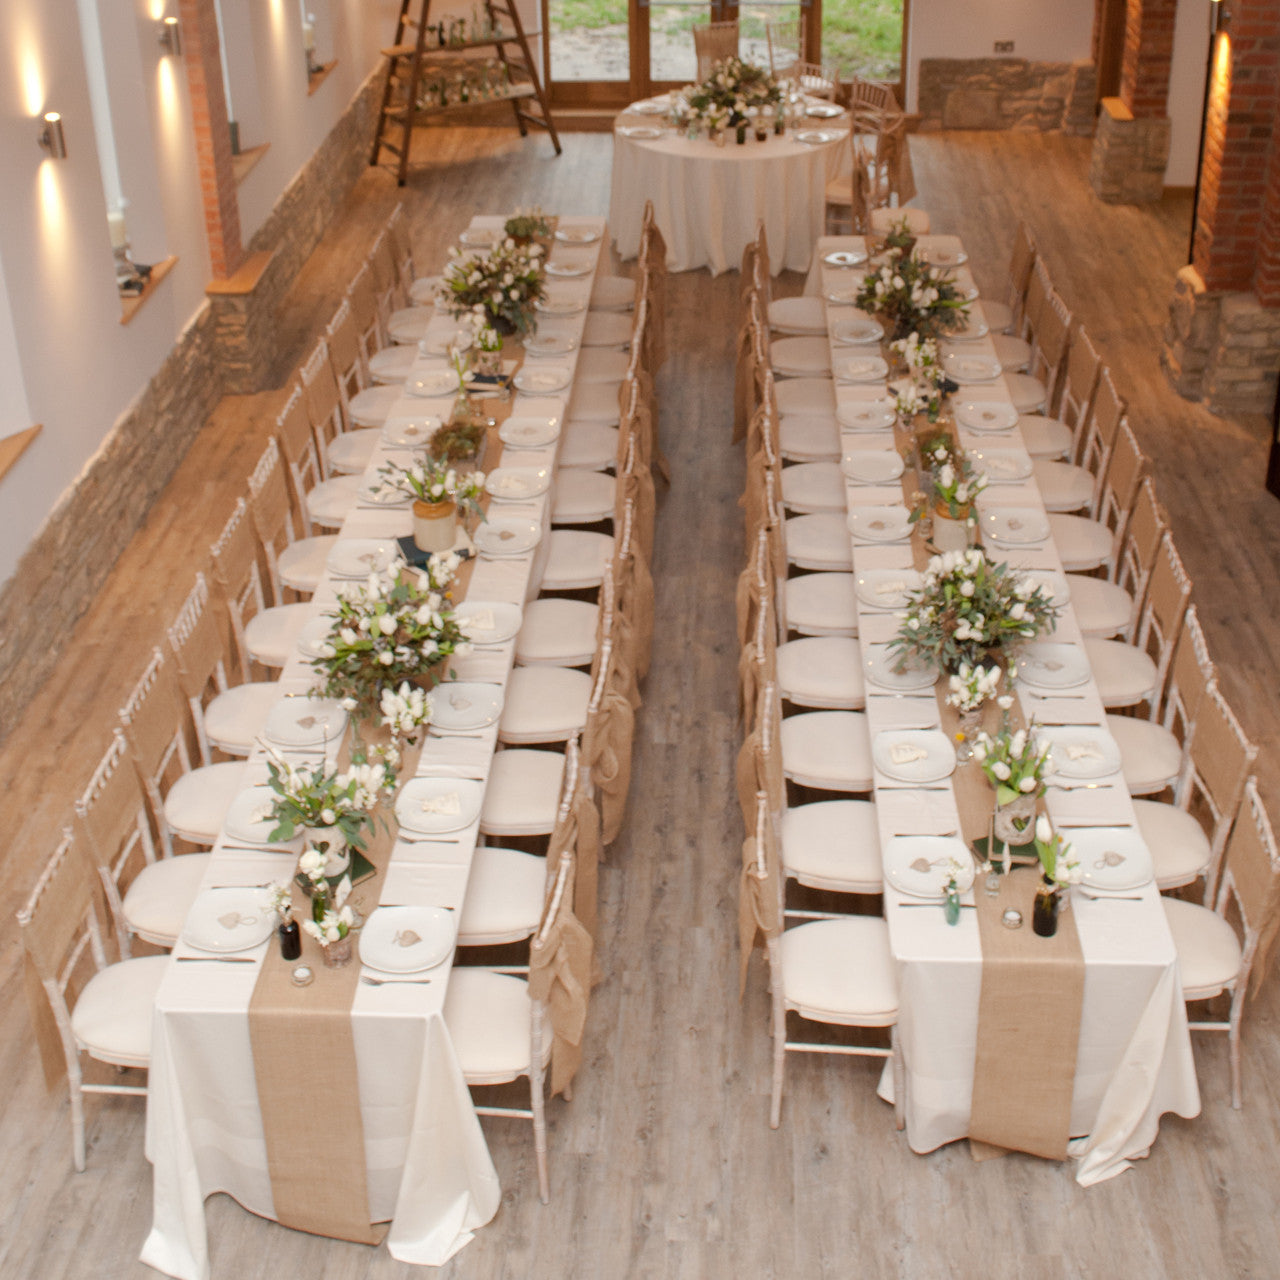 Hessian burlap table runner 5m length the wedding of my dreams junglespirit Images